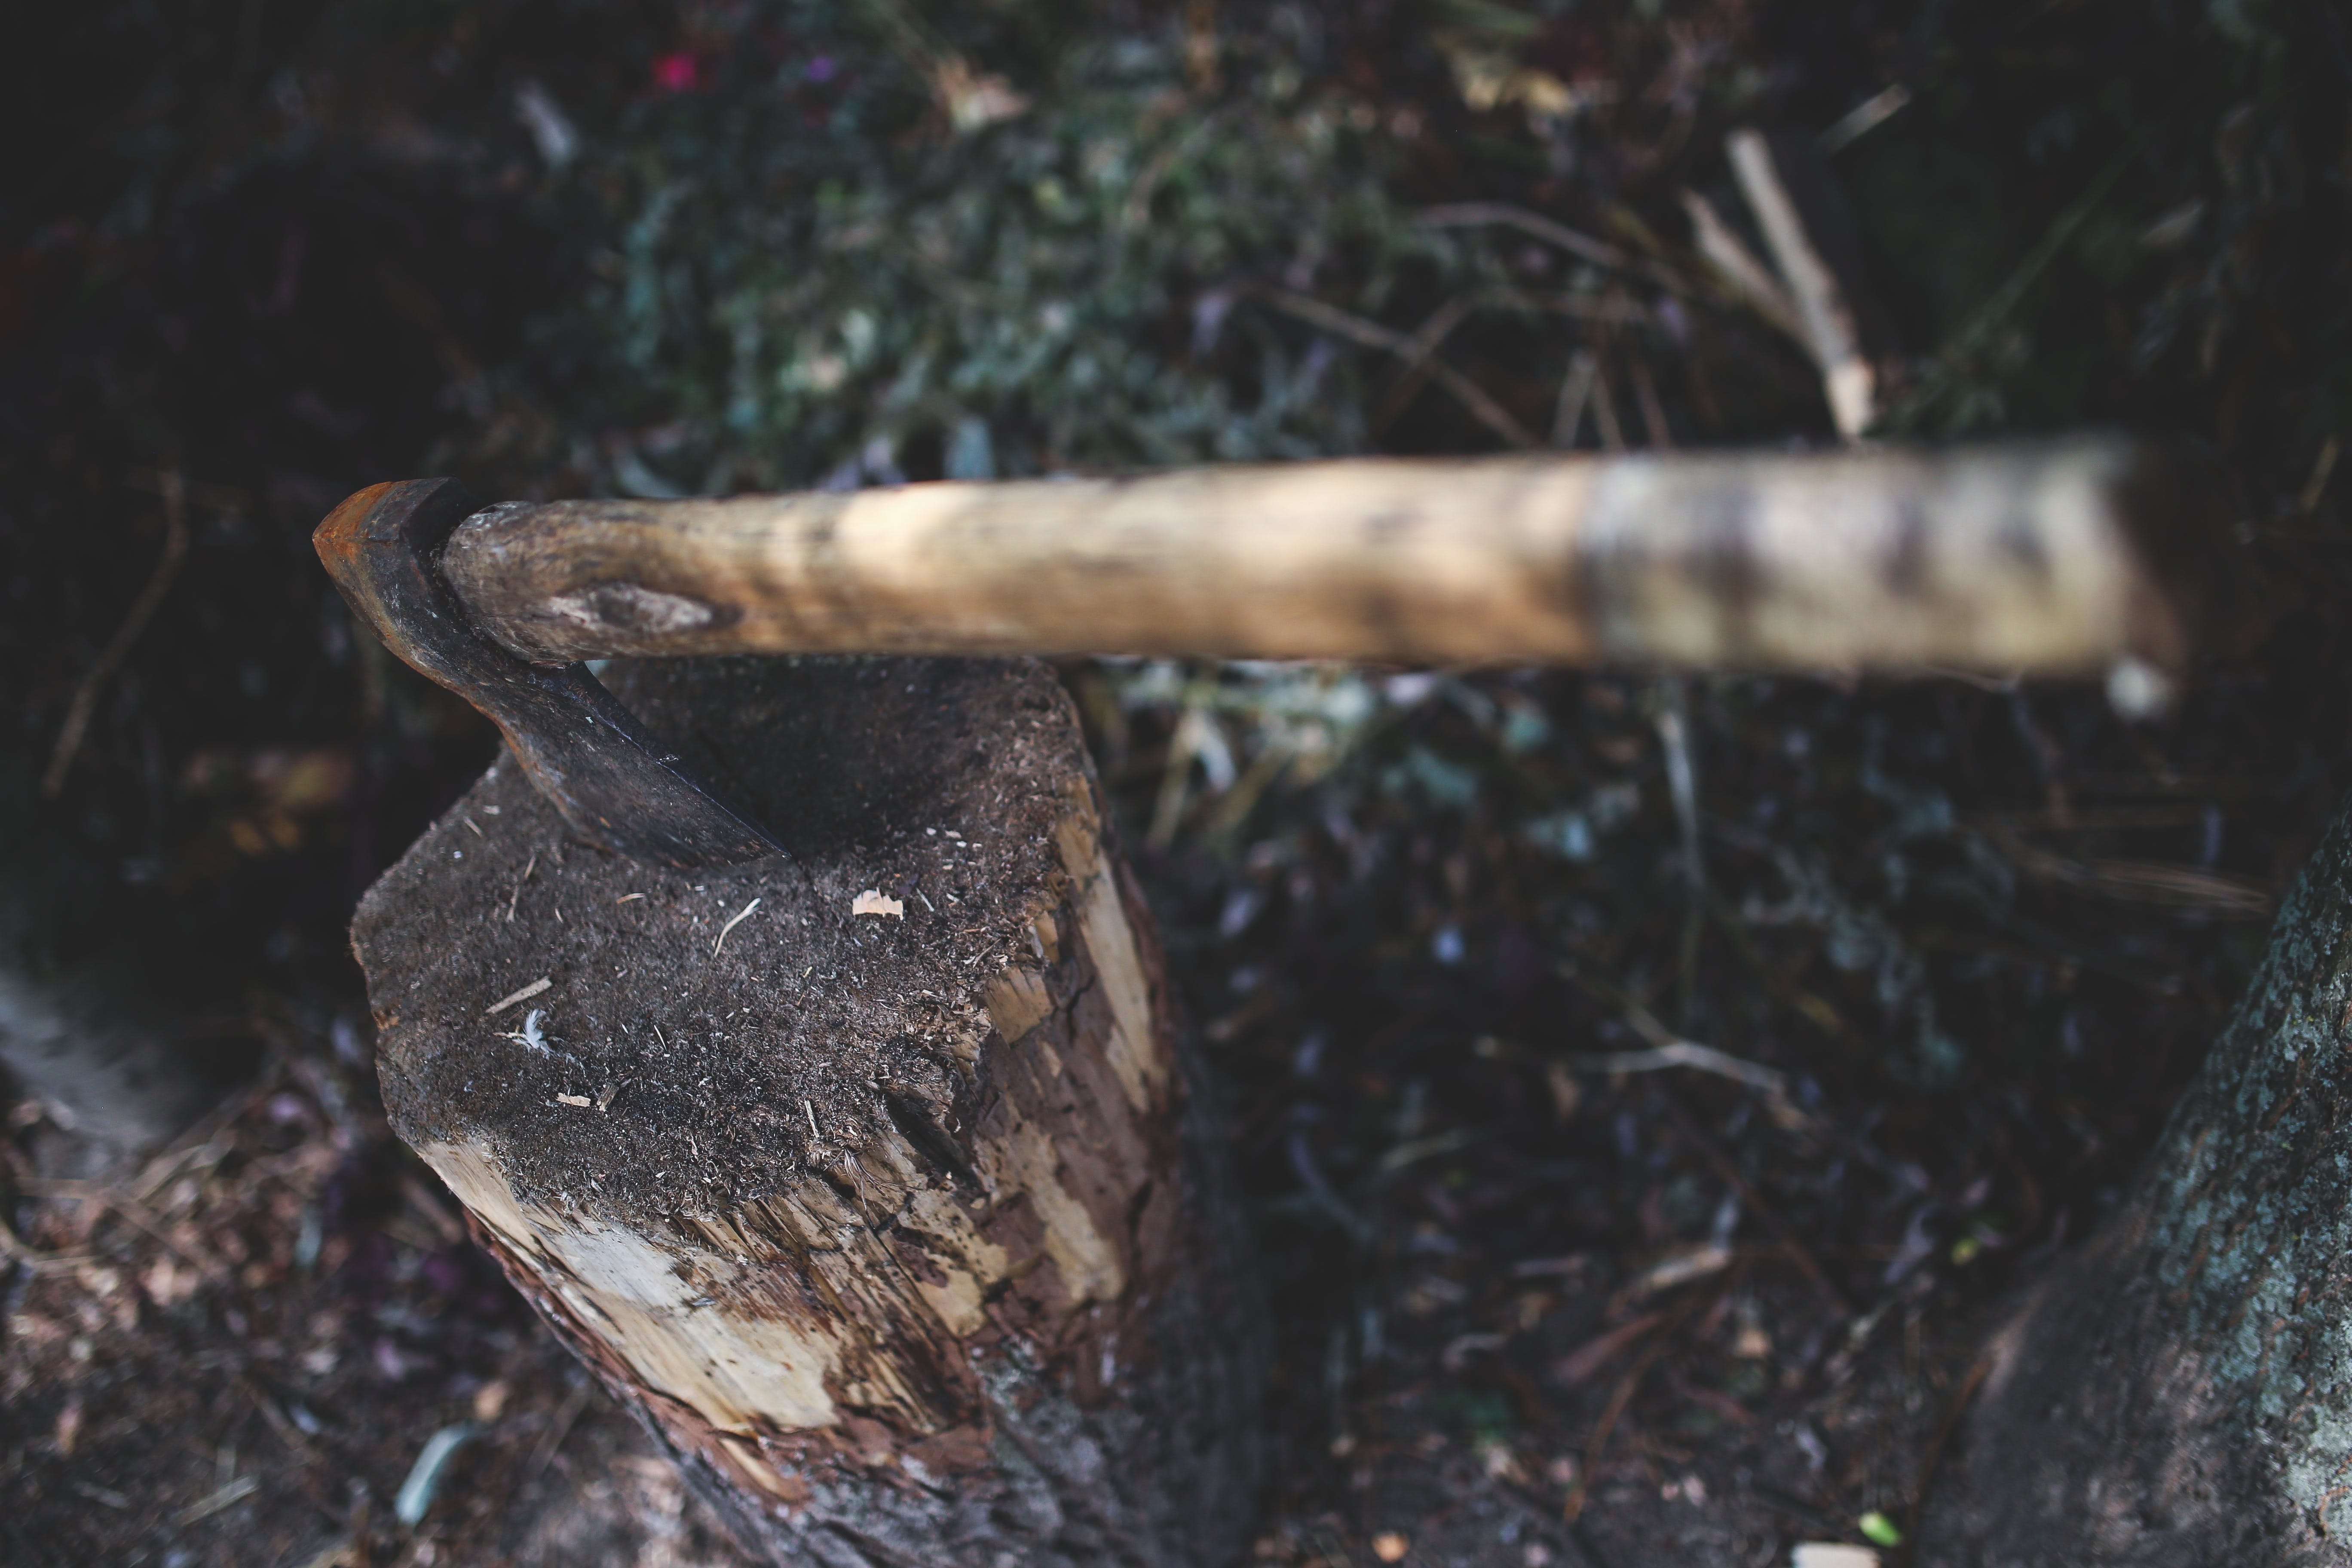 Ax in the stump